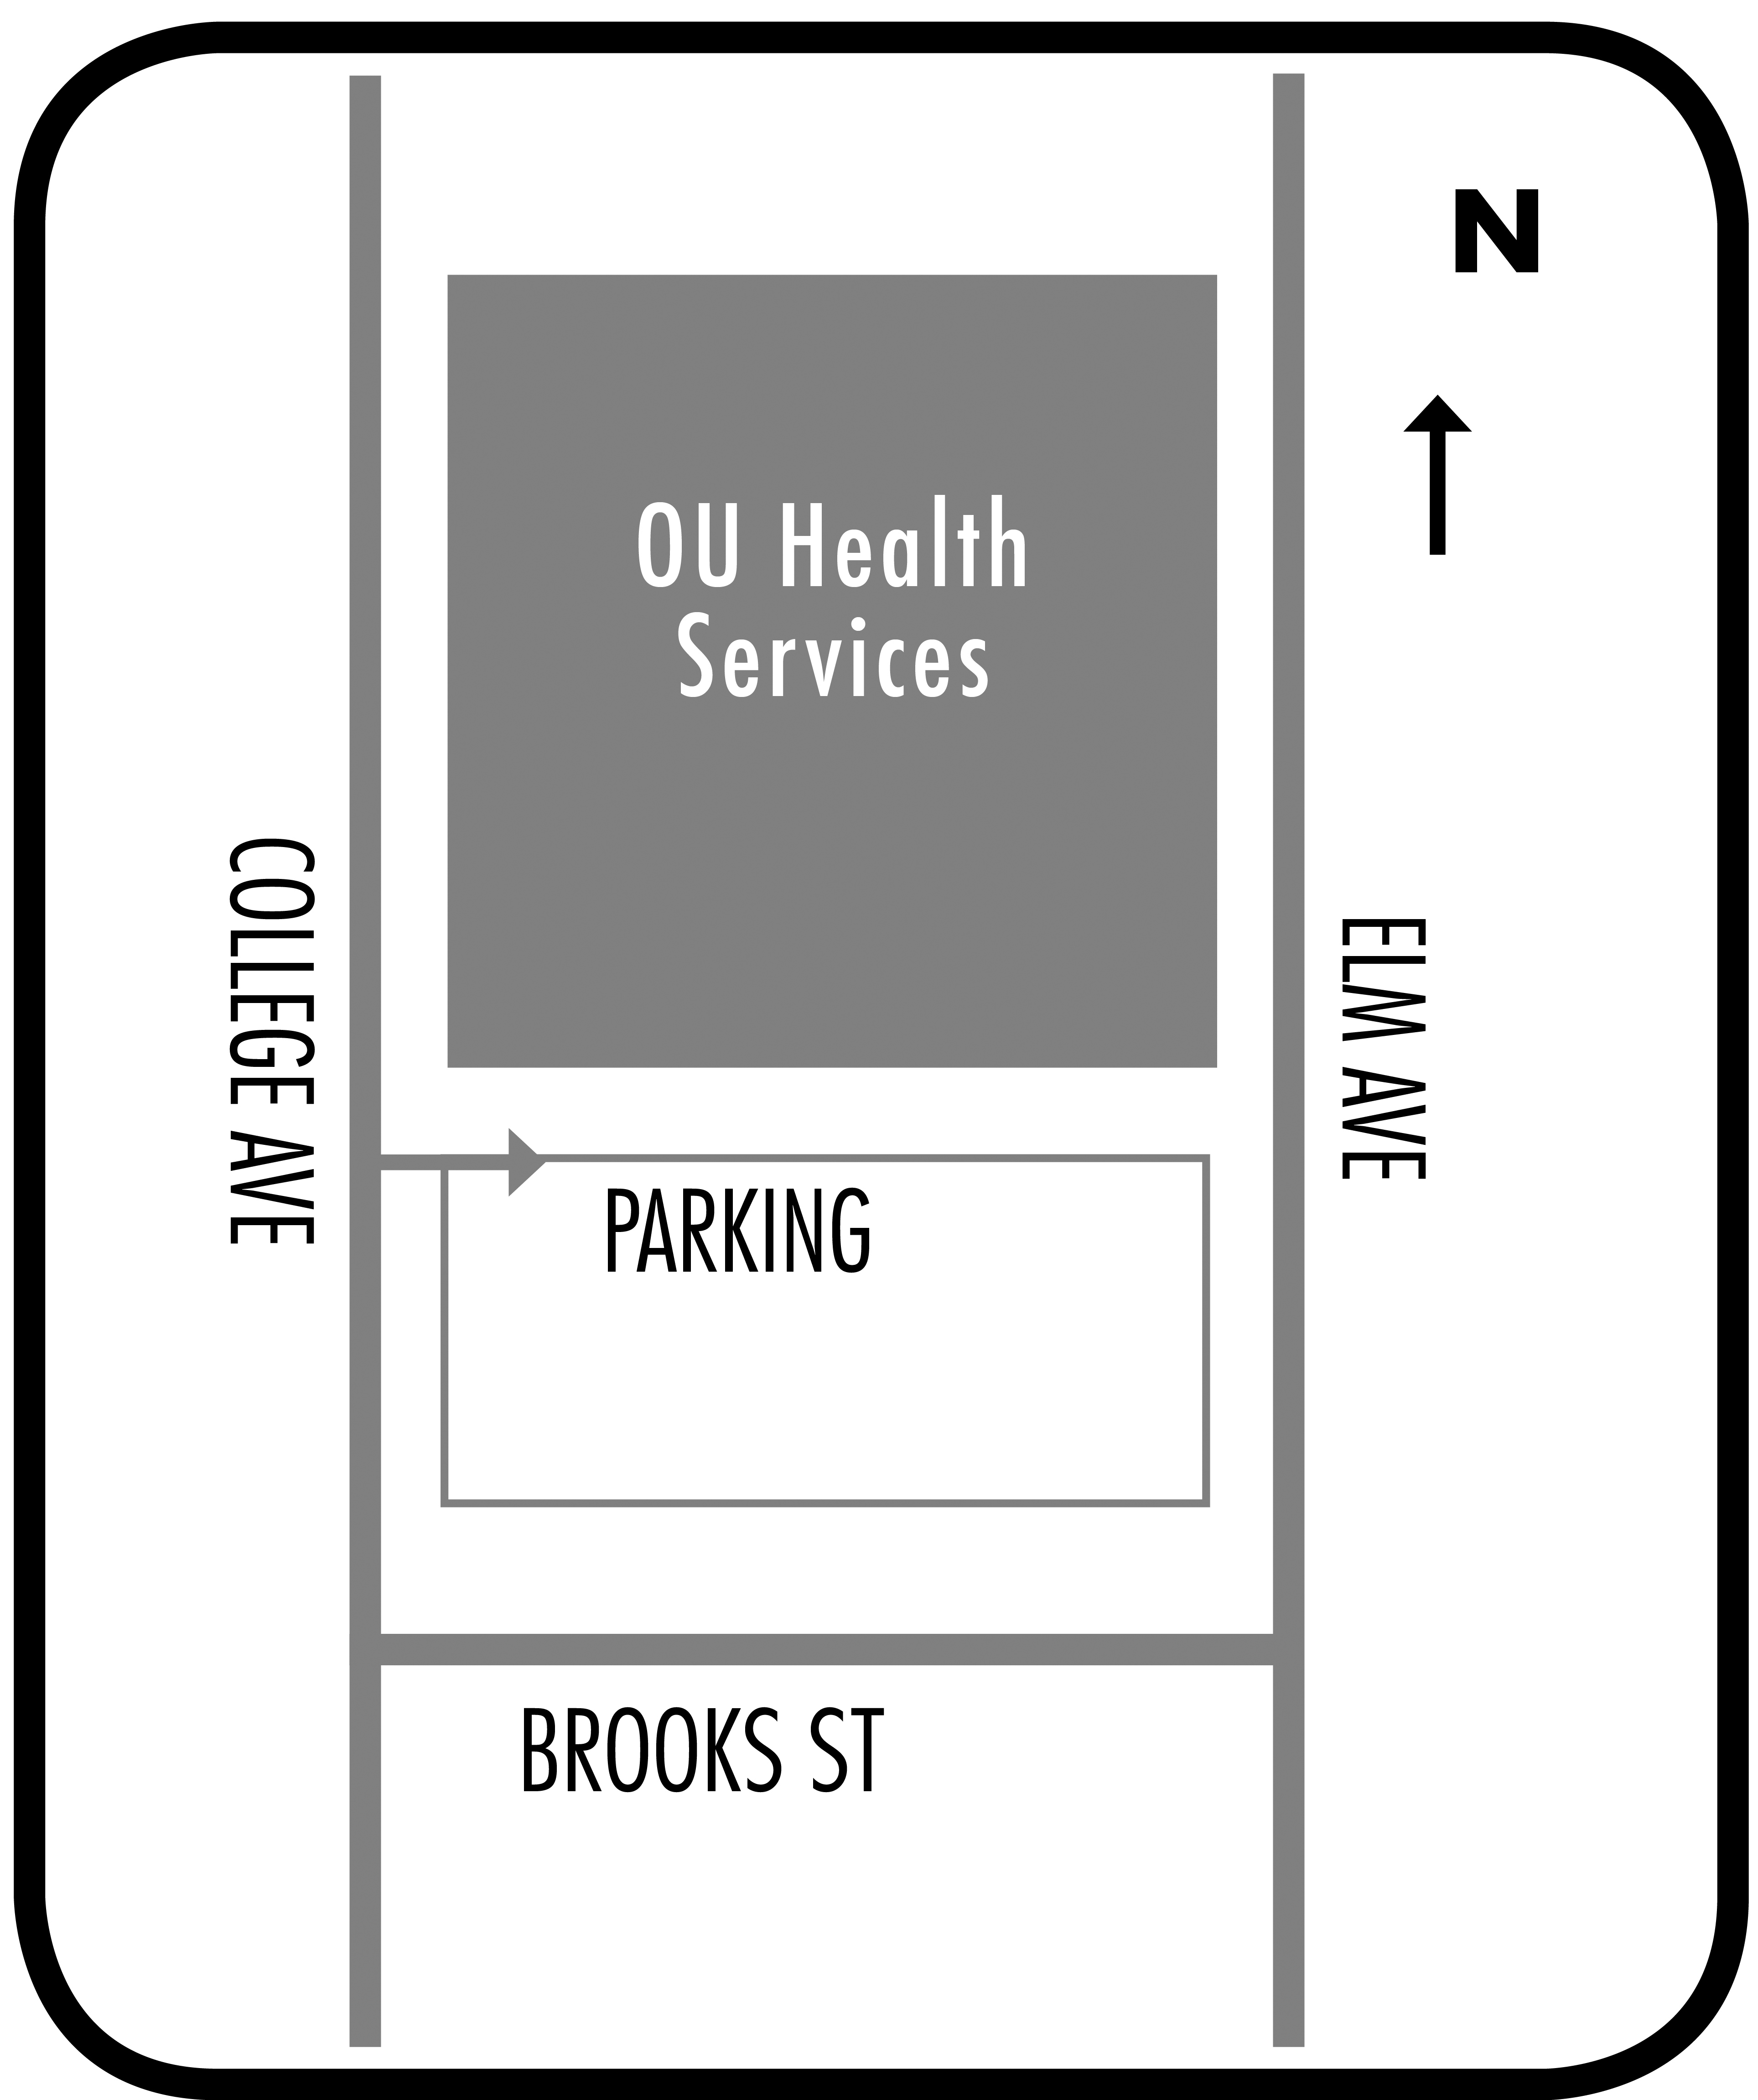 OUHS is located on the corner of Elm Avenue and Brooks Street.